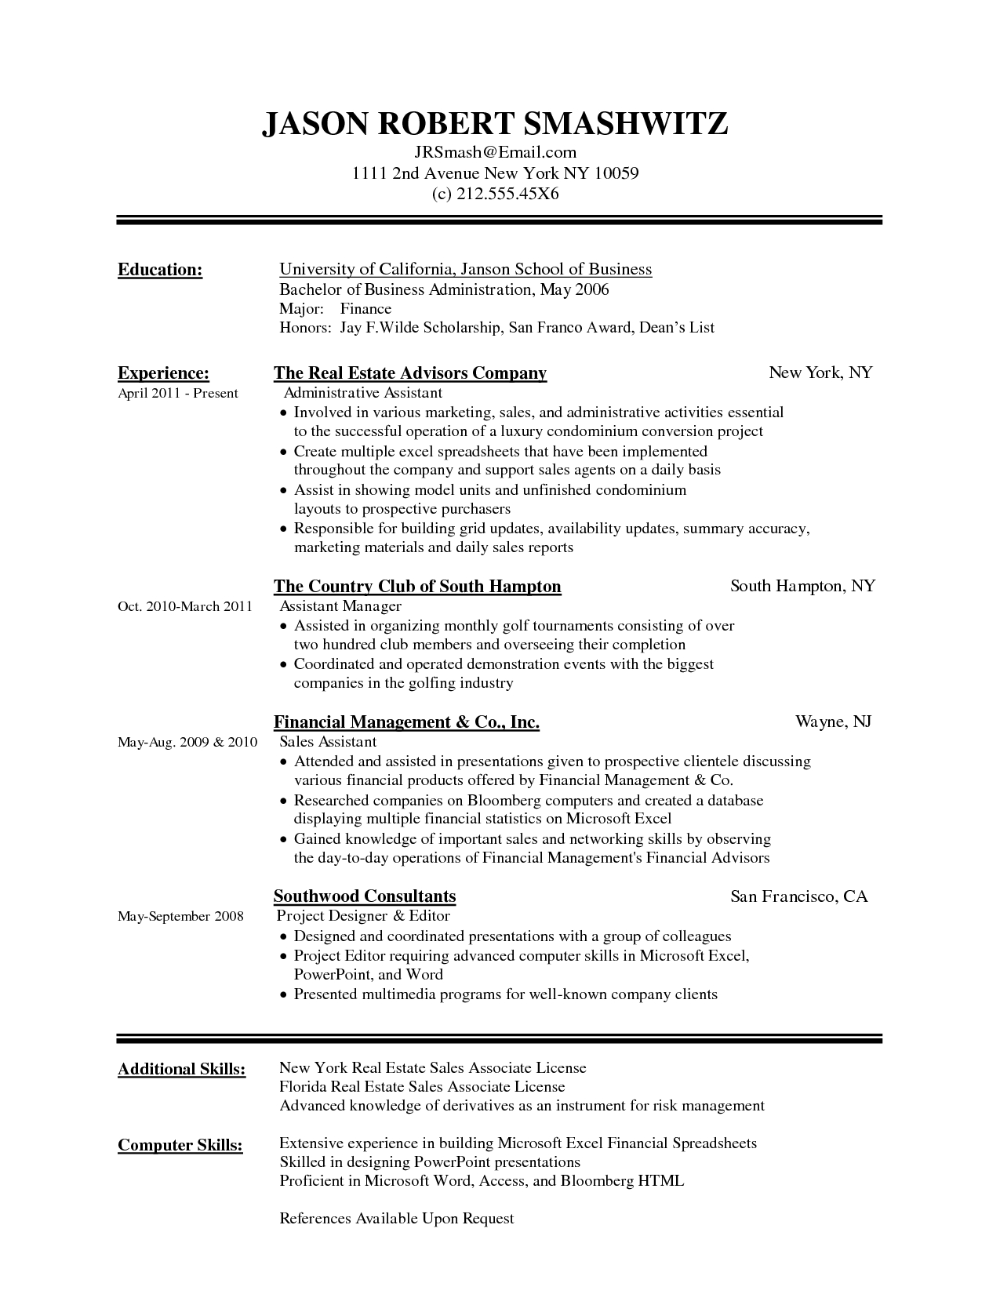 Template Ideas Resume Templates Word Outstanding Cv Ms Inside Resume Templates Microso In 2020 Microsoft Word Resume Template Resume Template Word Resume Template Free